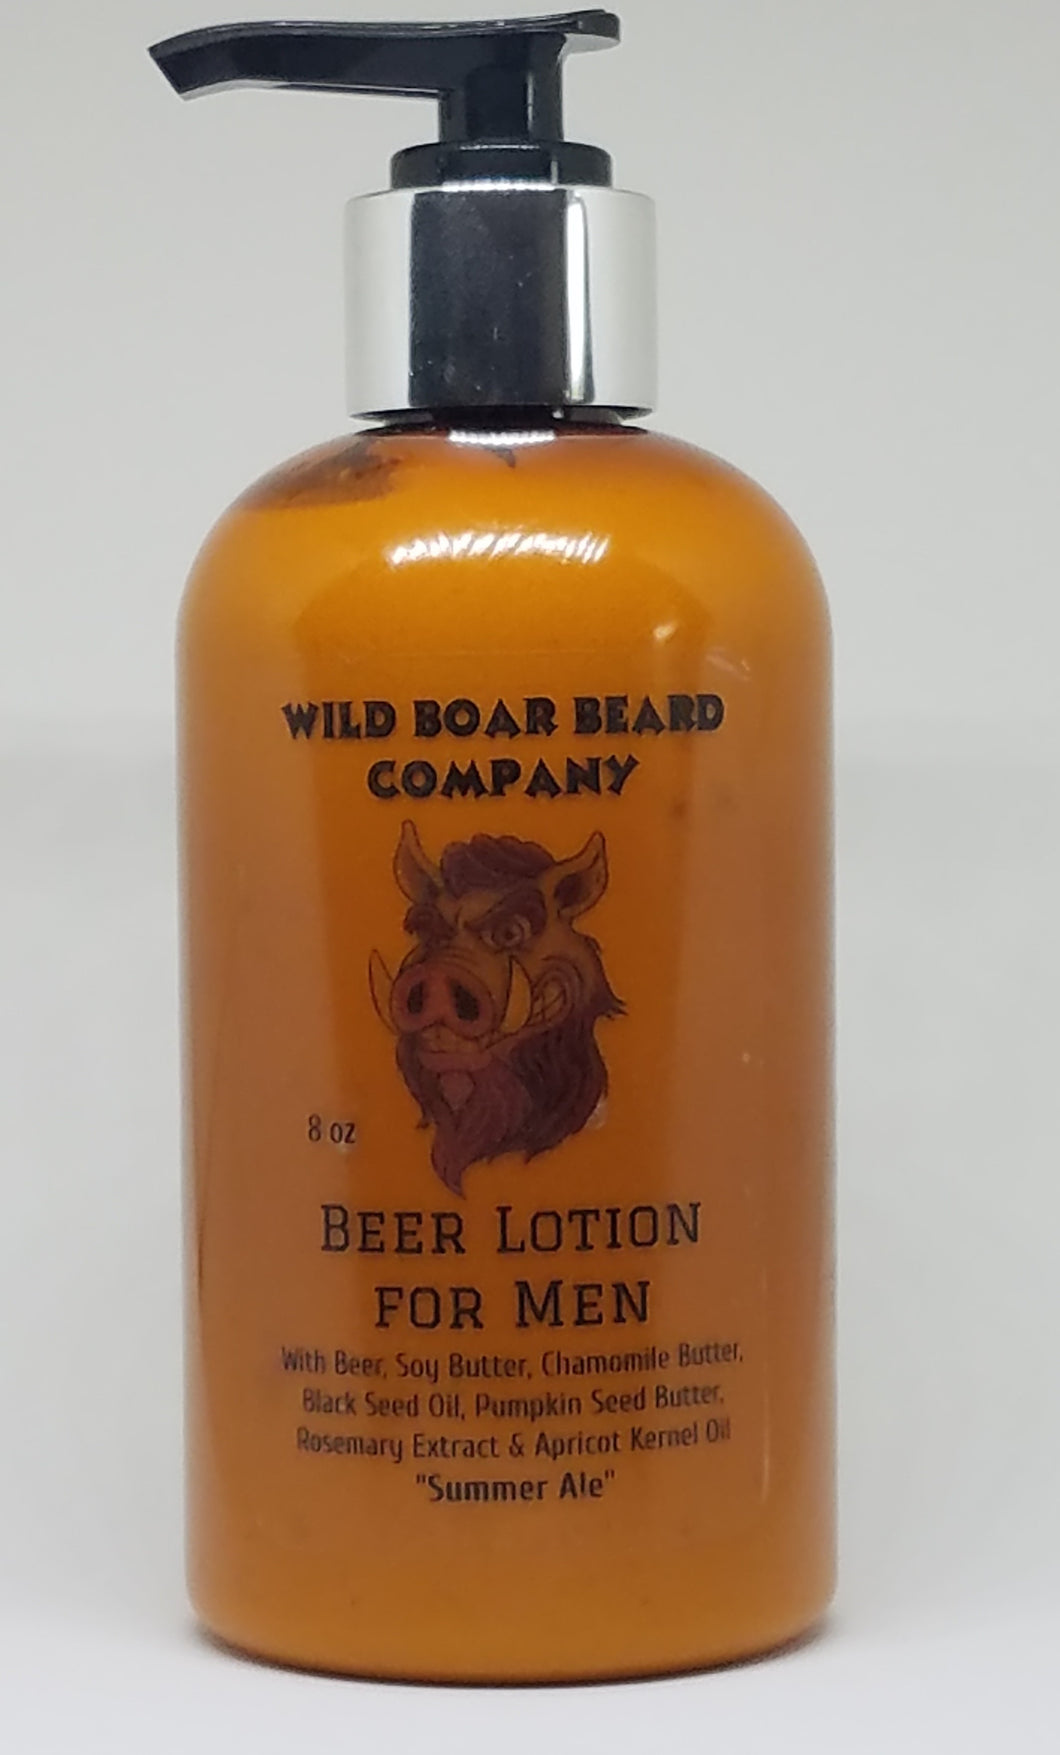 Beer Lotion